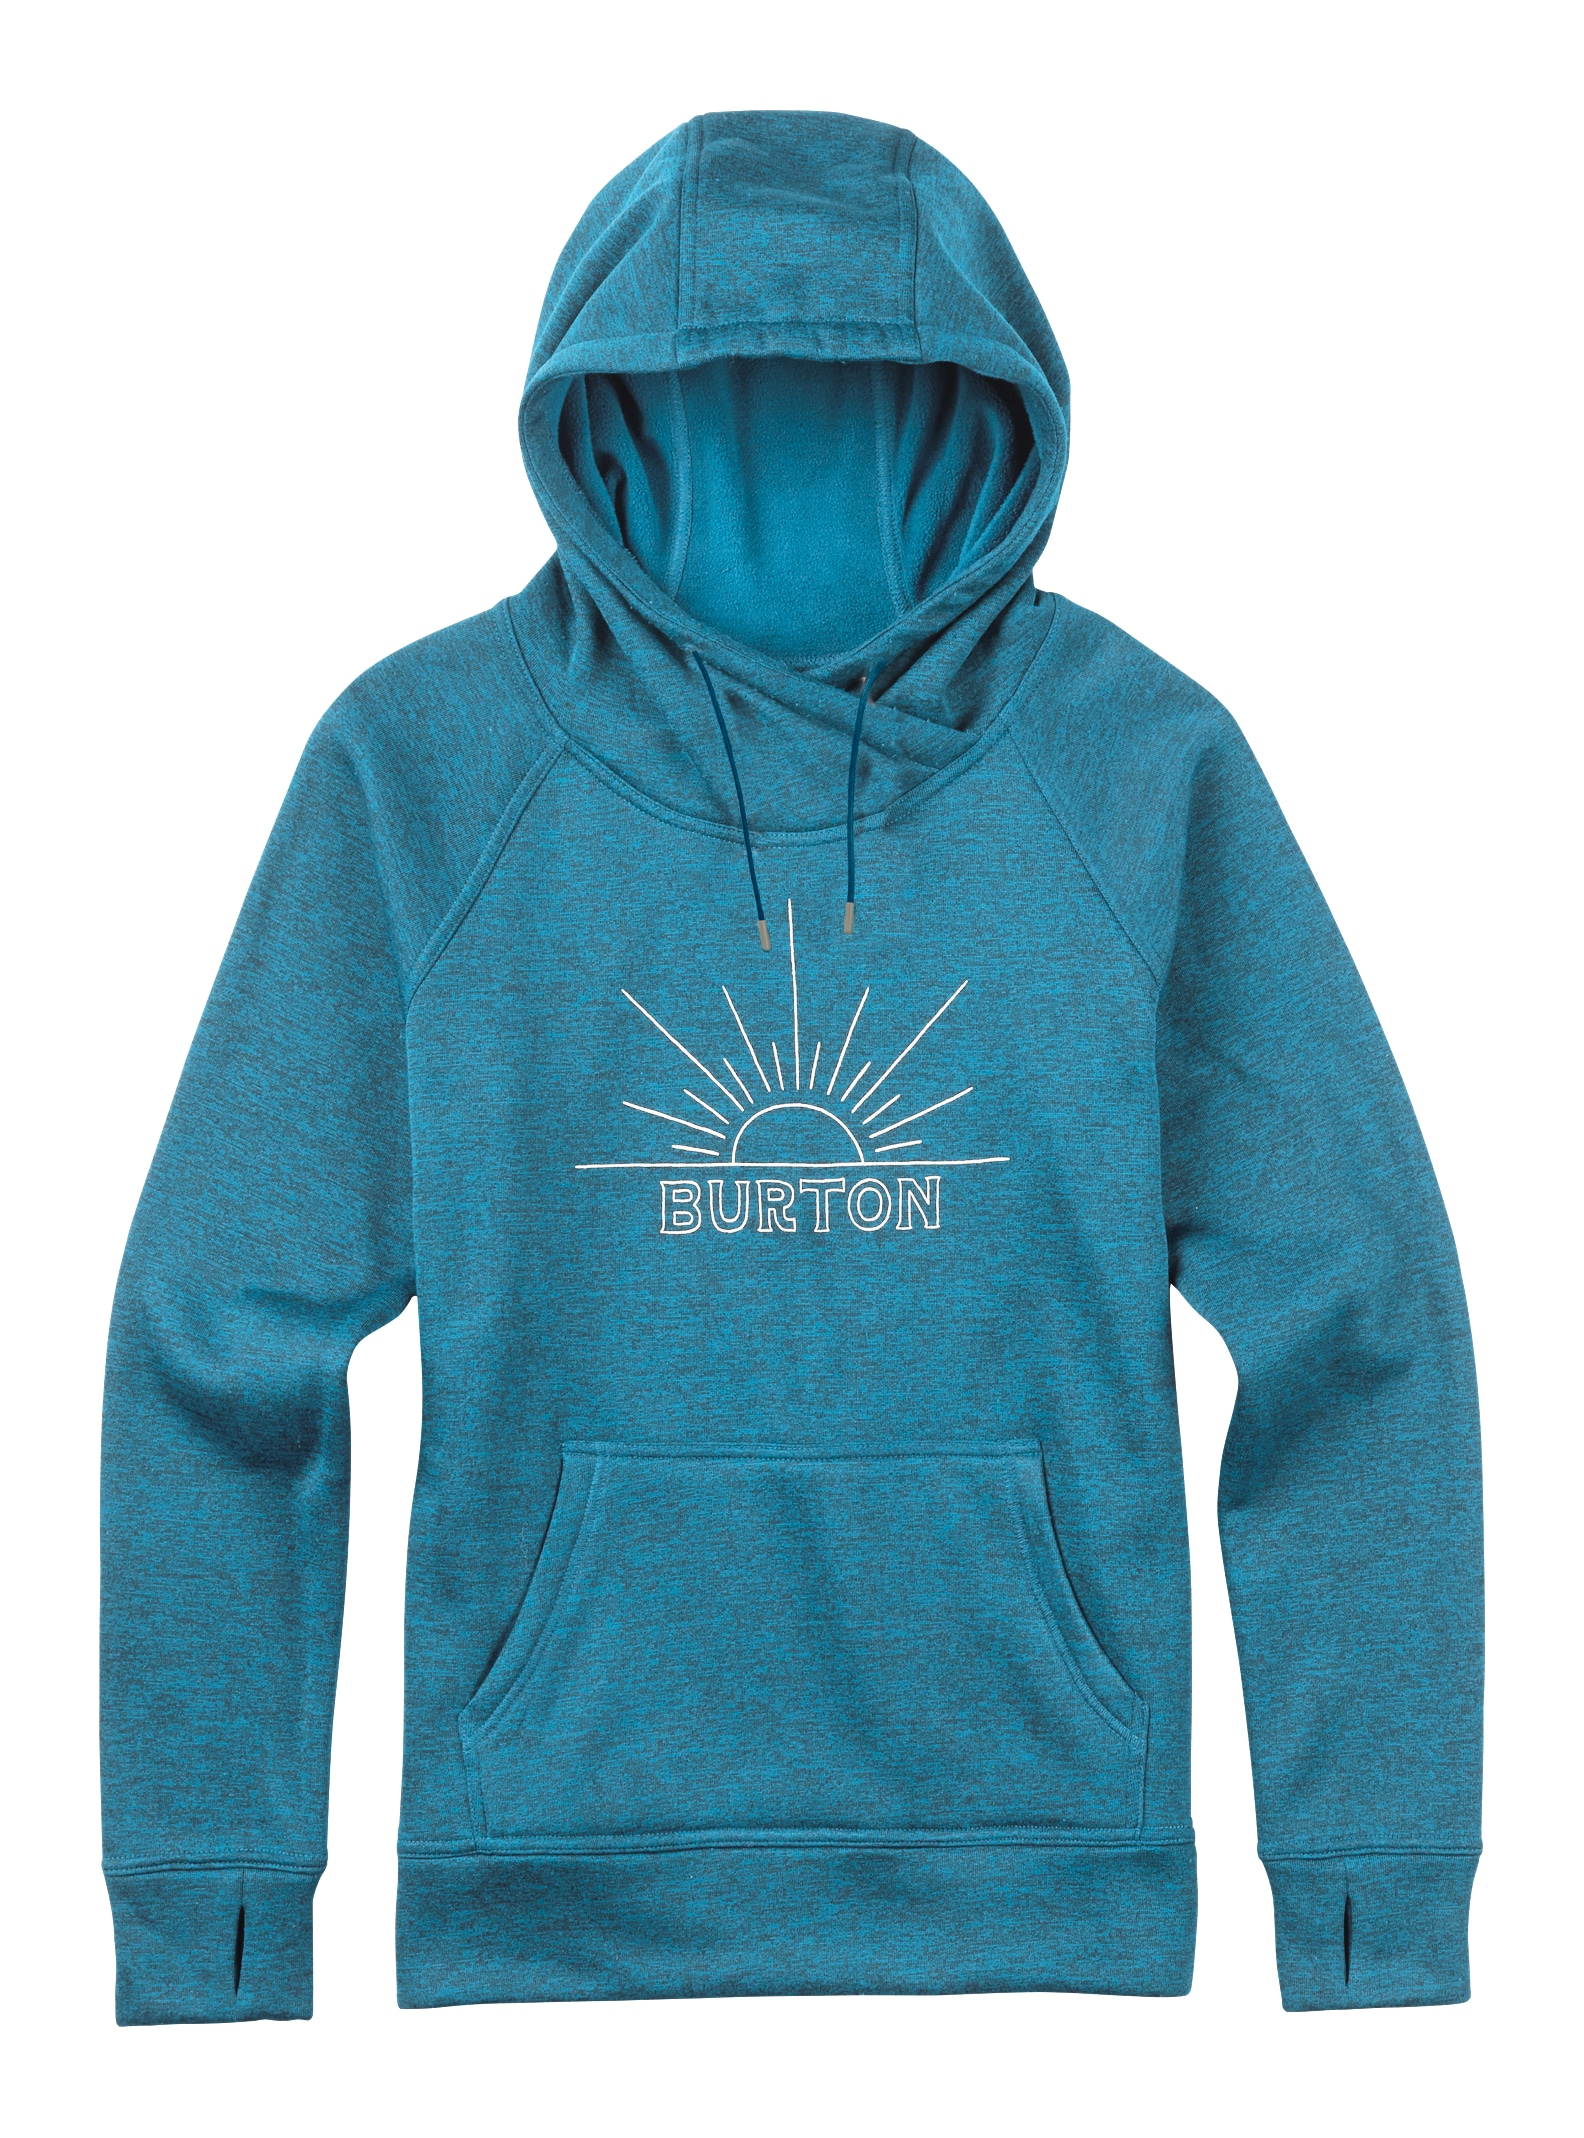 Burton - Sweat à capuche Quartz affichage en True Blue / Everglade Heather